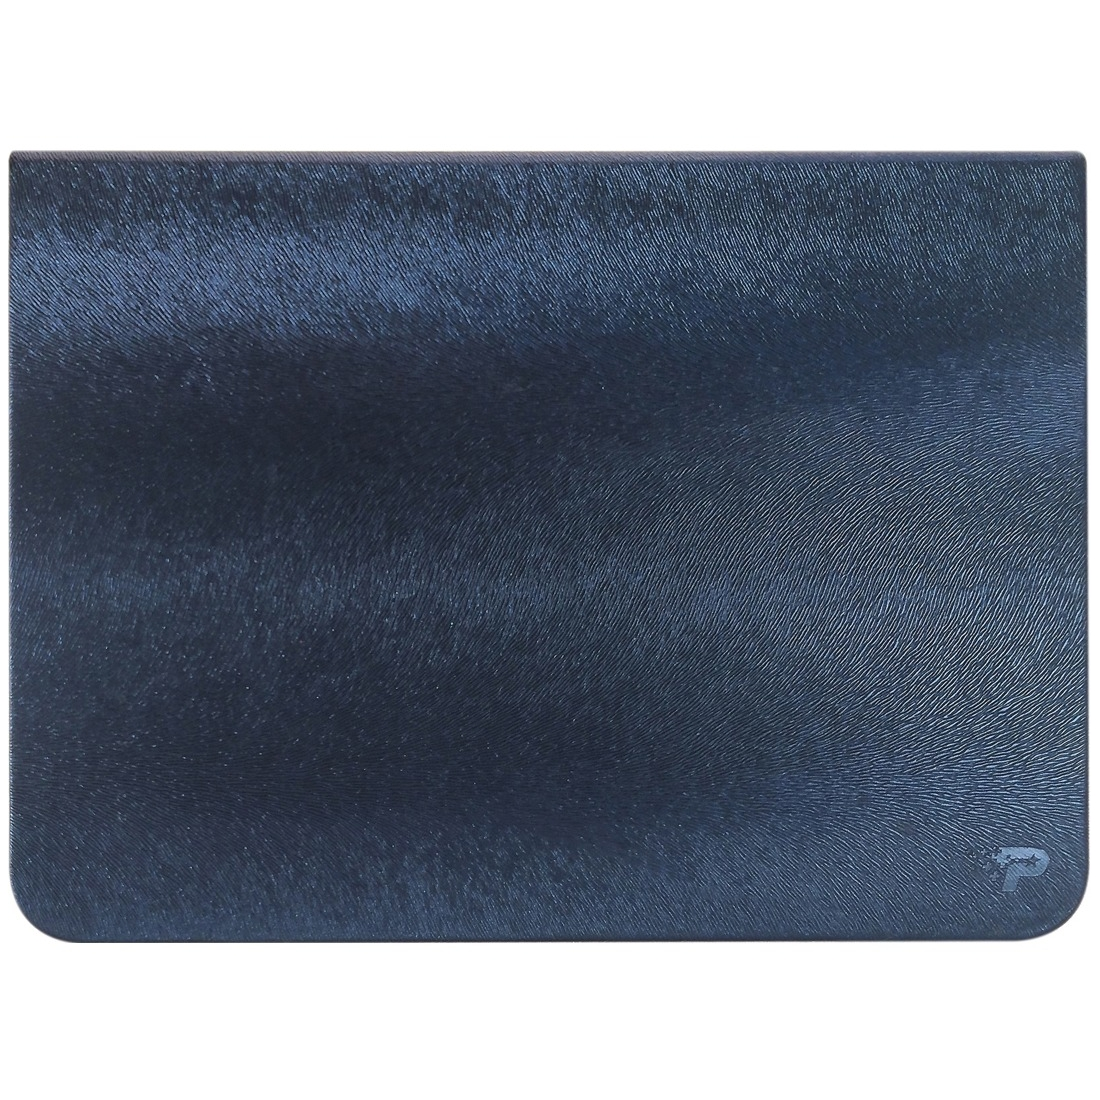 Patriot Memory FlexFit Carrying Case for iPad Air - Navy PCFFIPA-NV